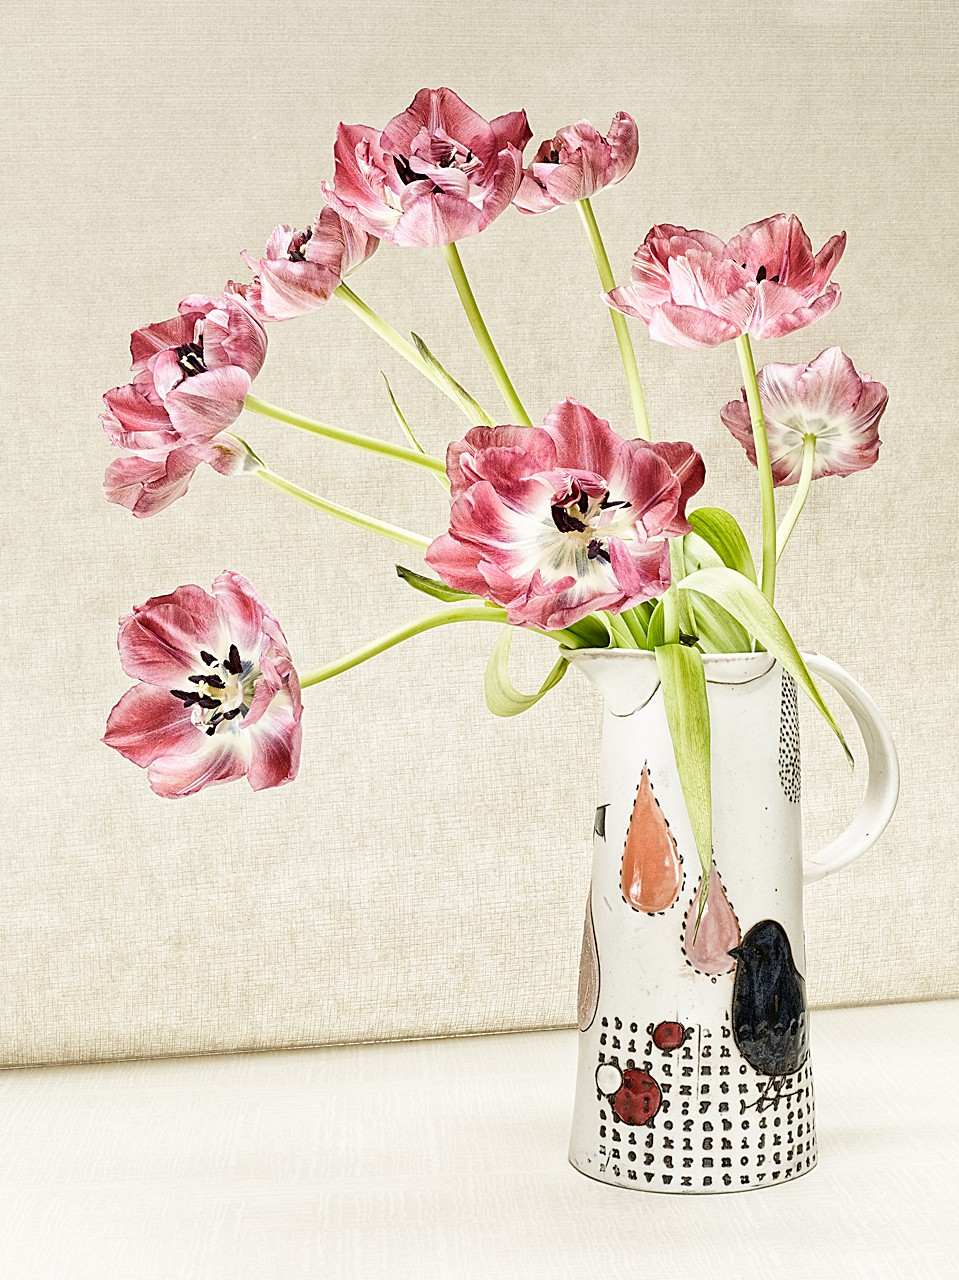 Sabine-Scheer-still-life-photography-tulips-bird